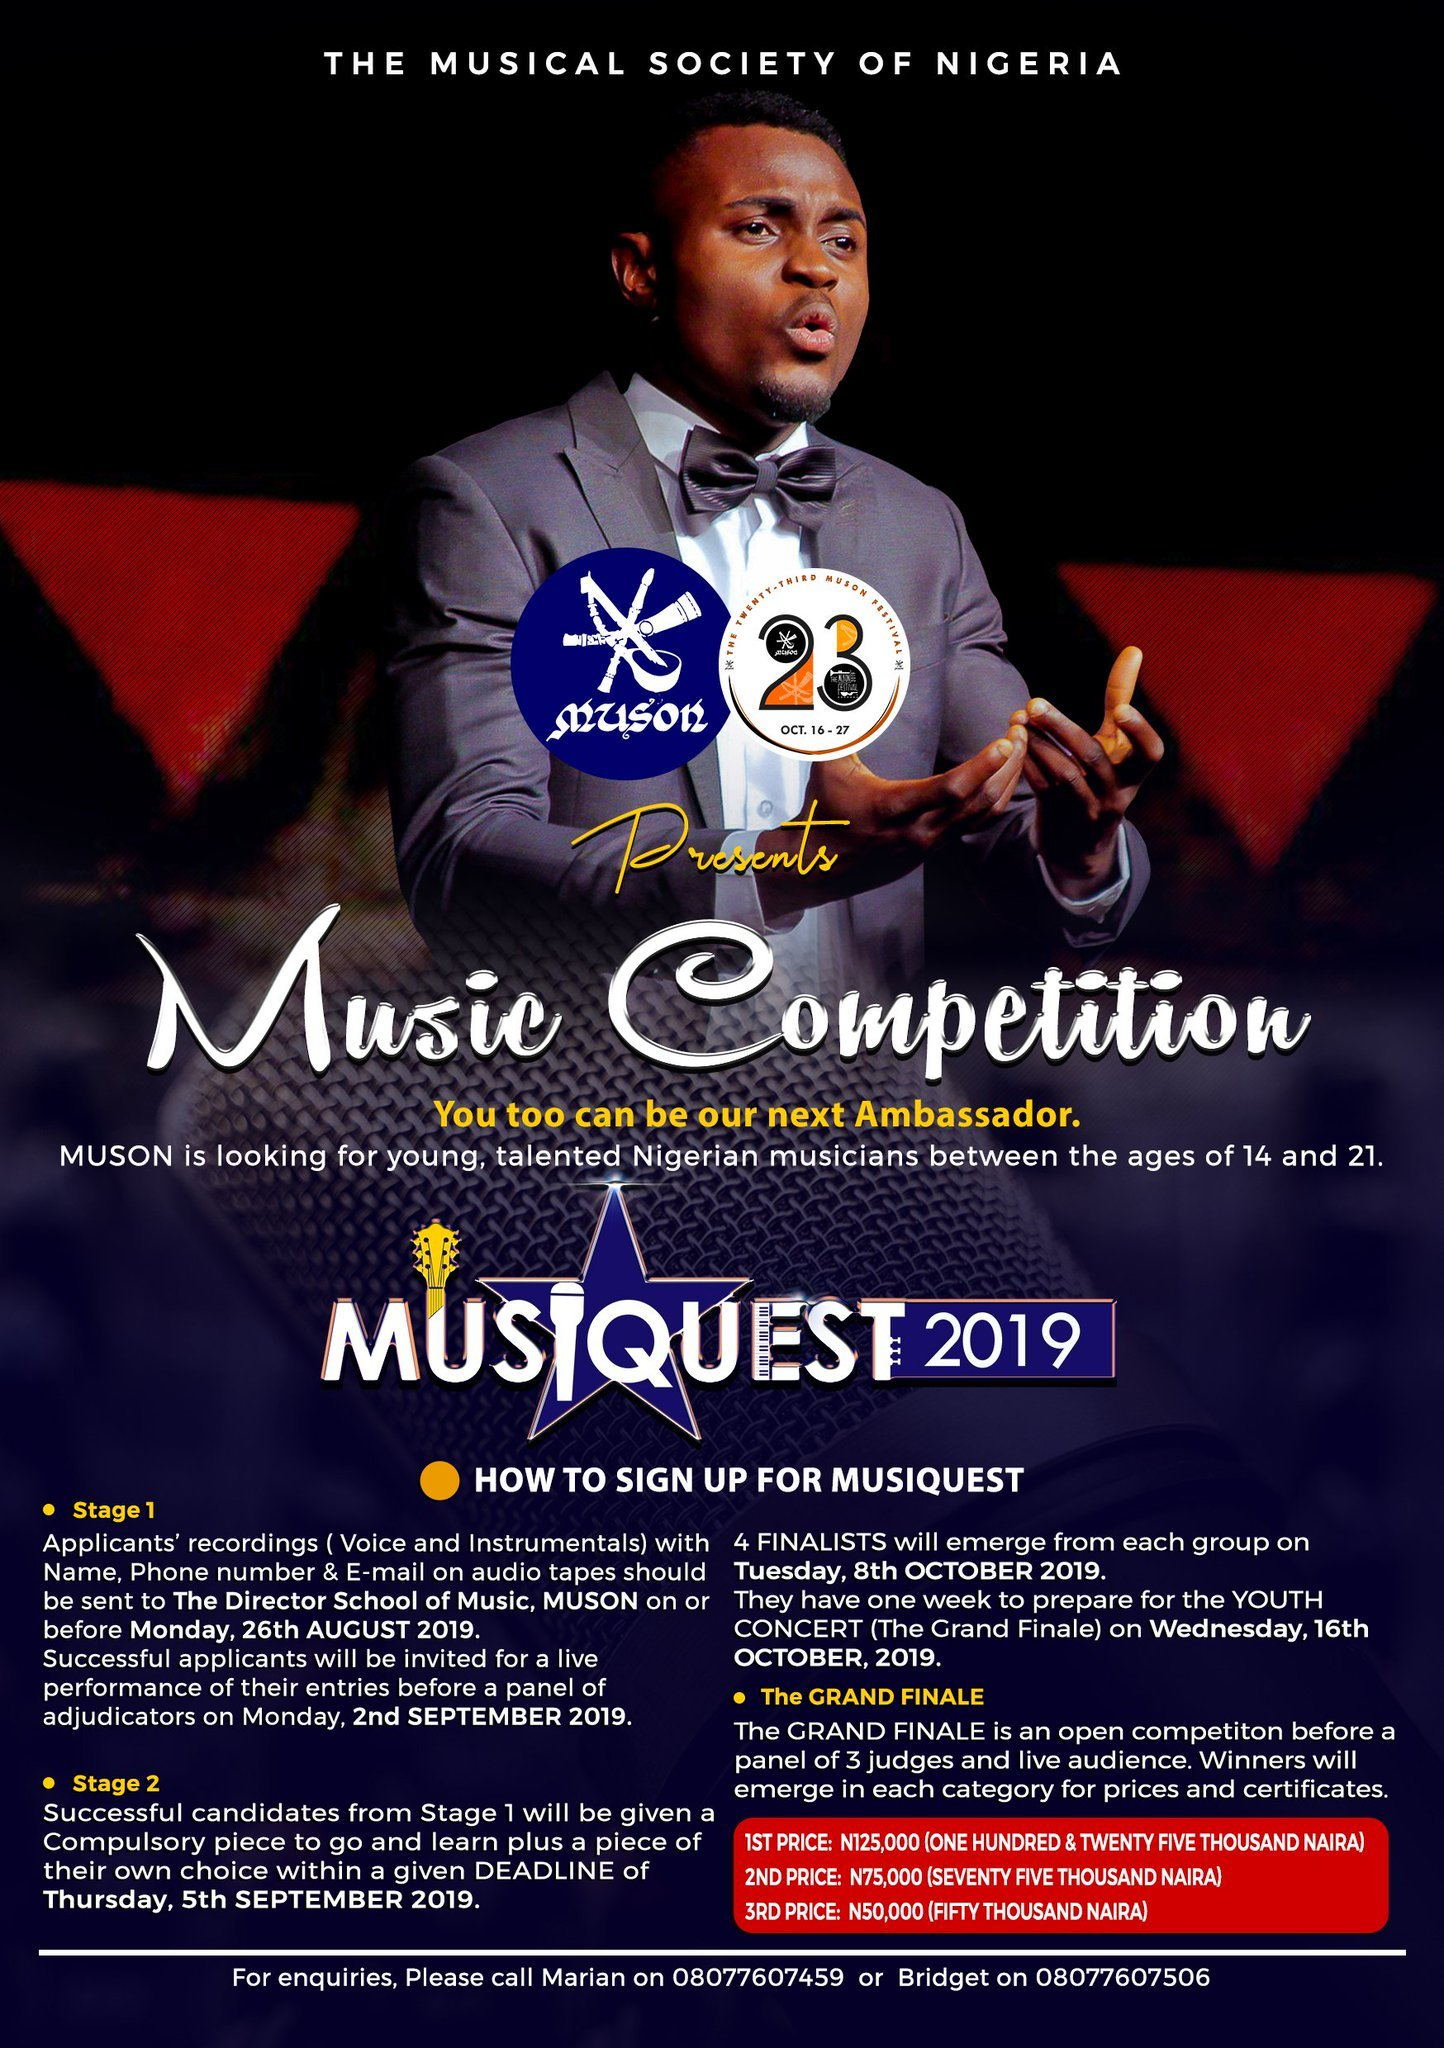 Musical Society of Nigeria (MUSON) MusicQuest Competition